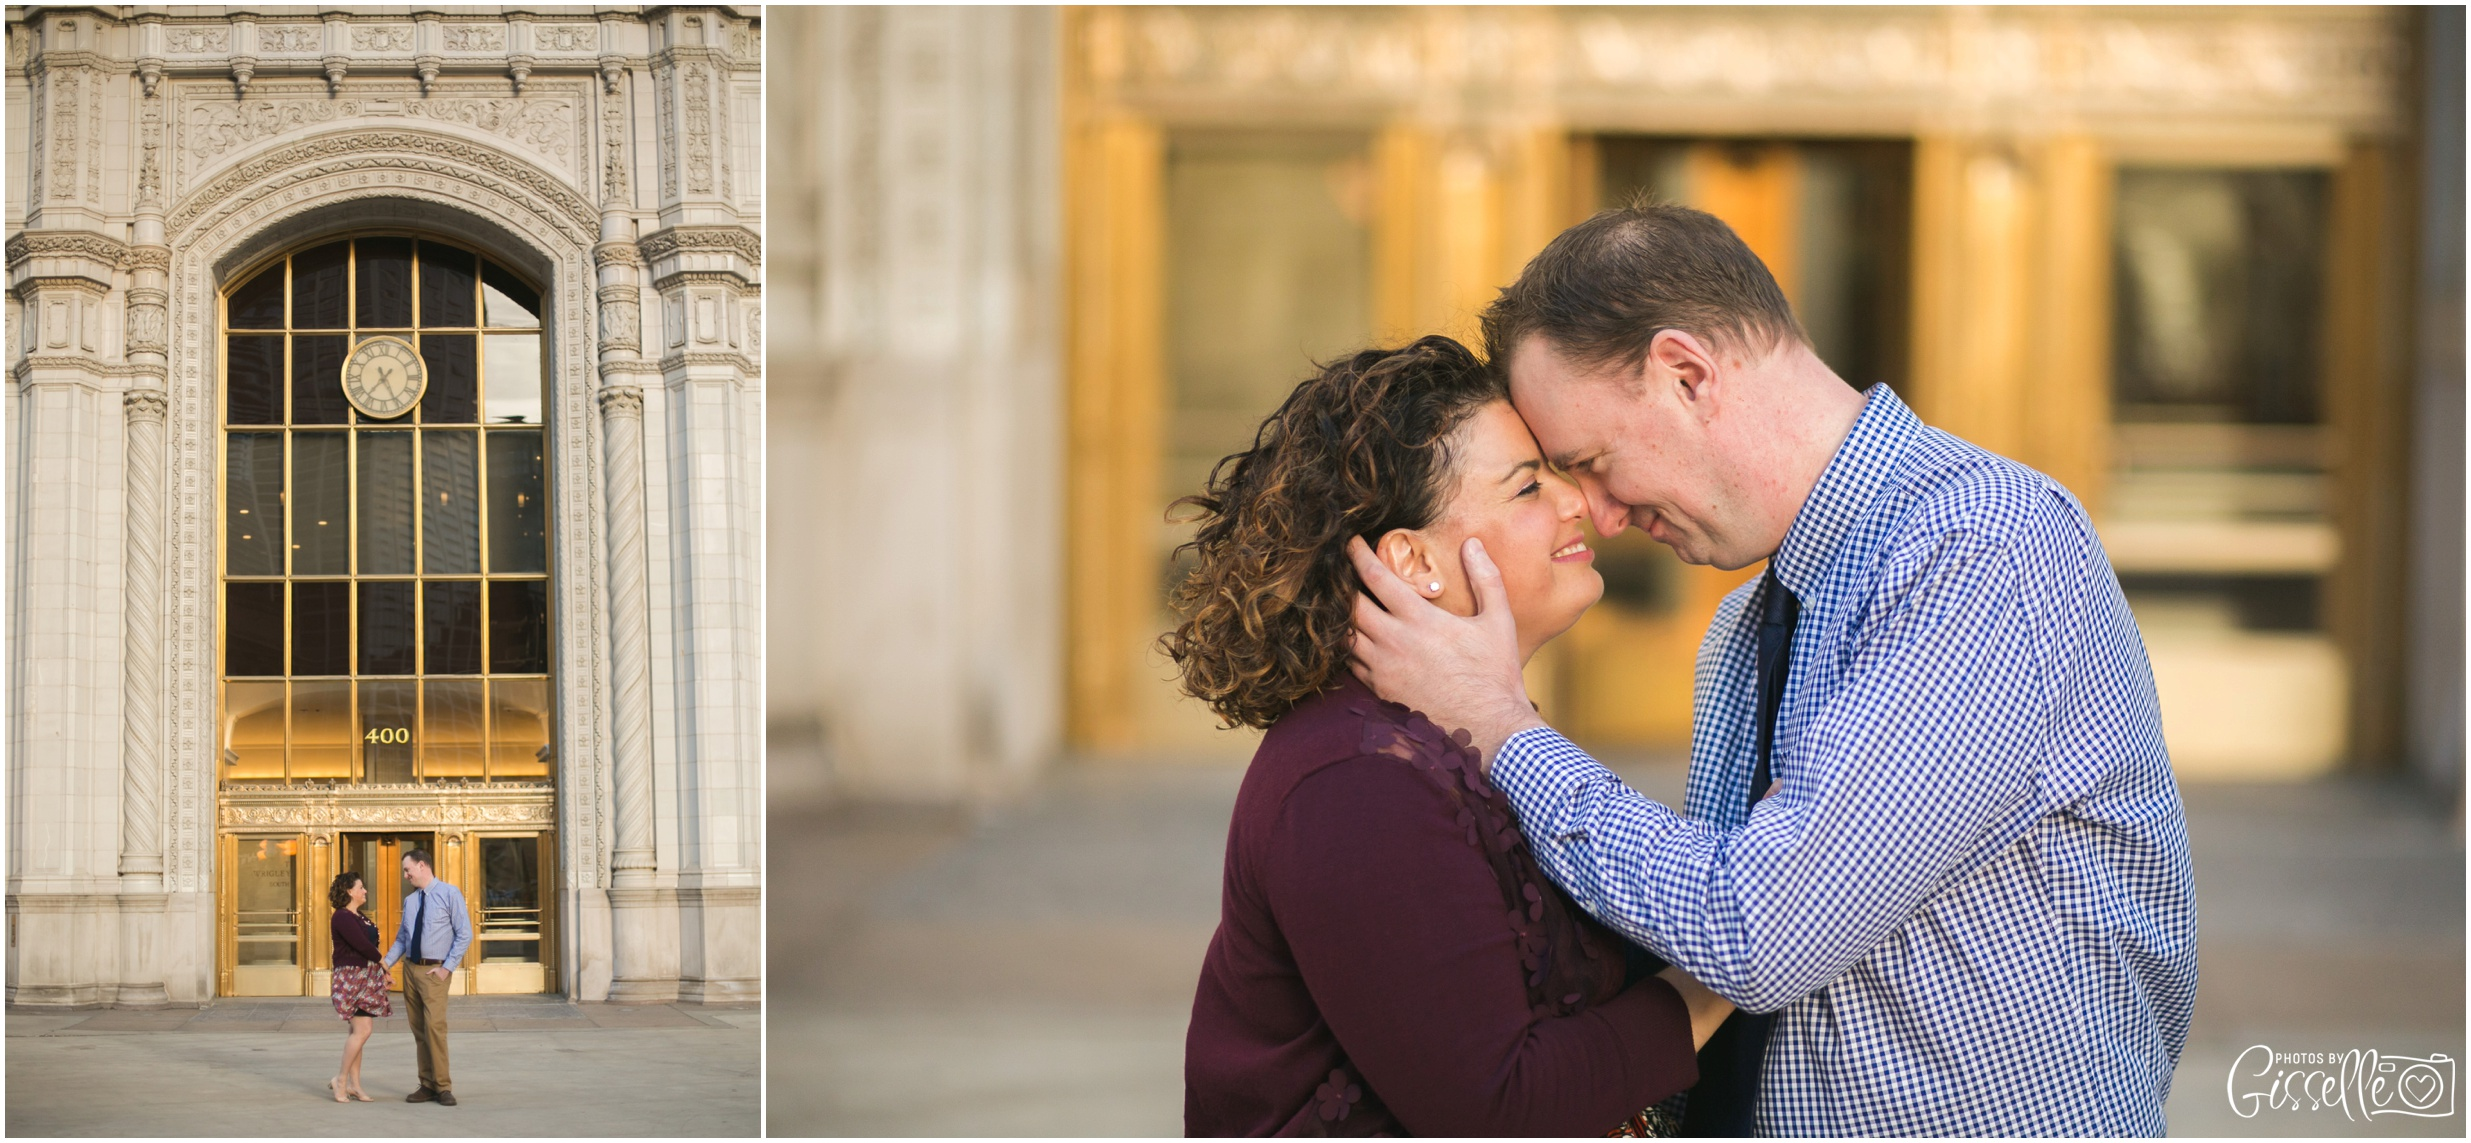 Chicago Engagement Session_0044.jpg